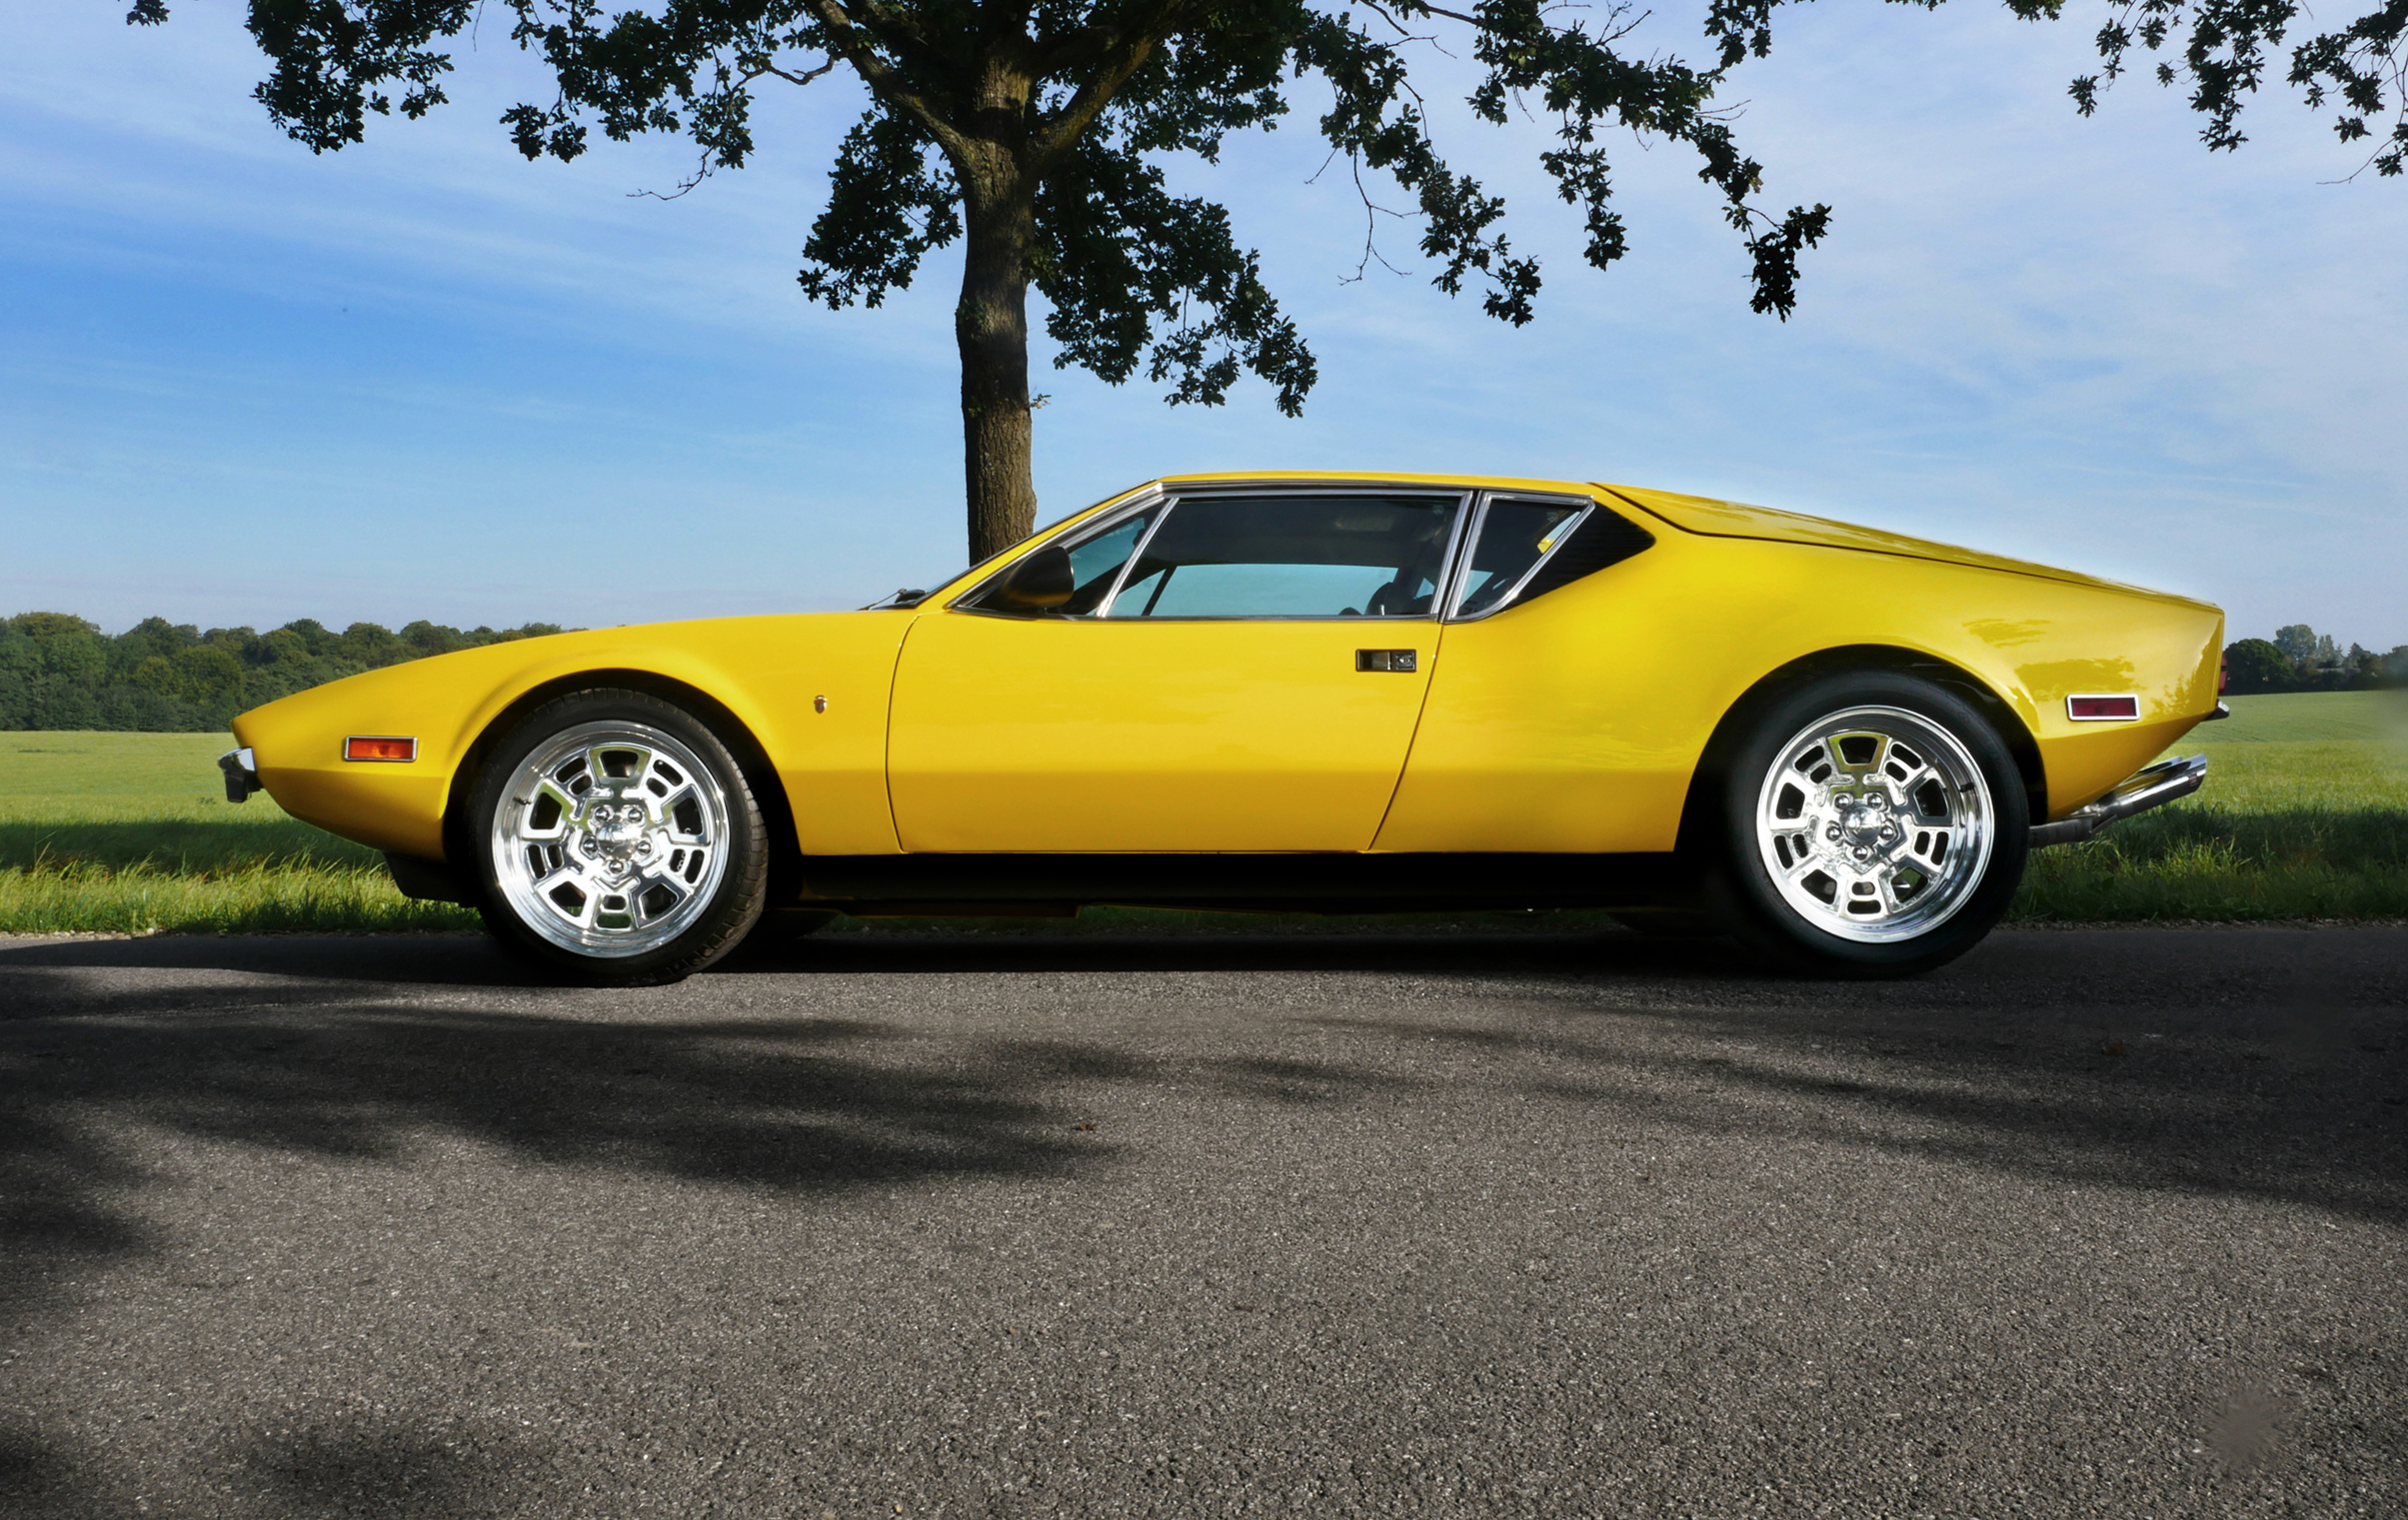 Yellow Sports Car Parked Near Green Leafed Tree